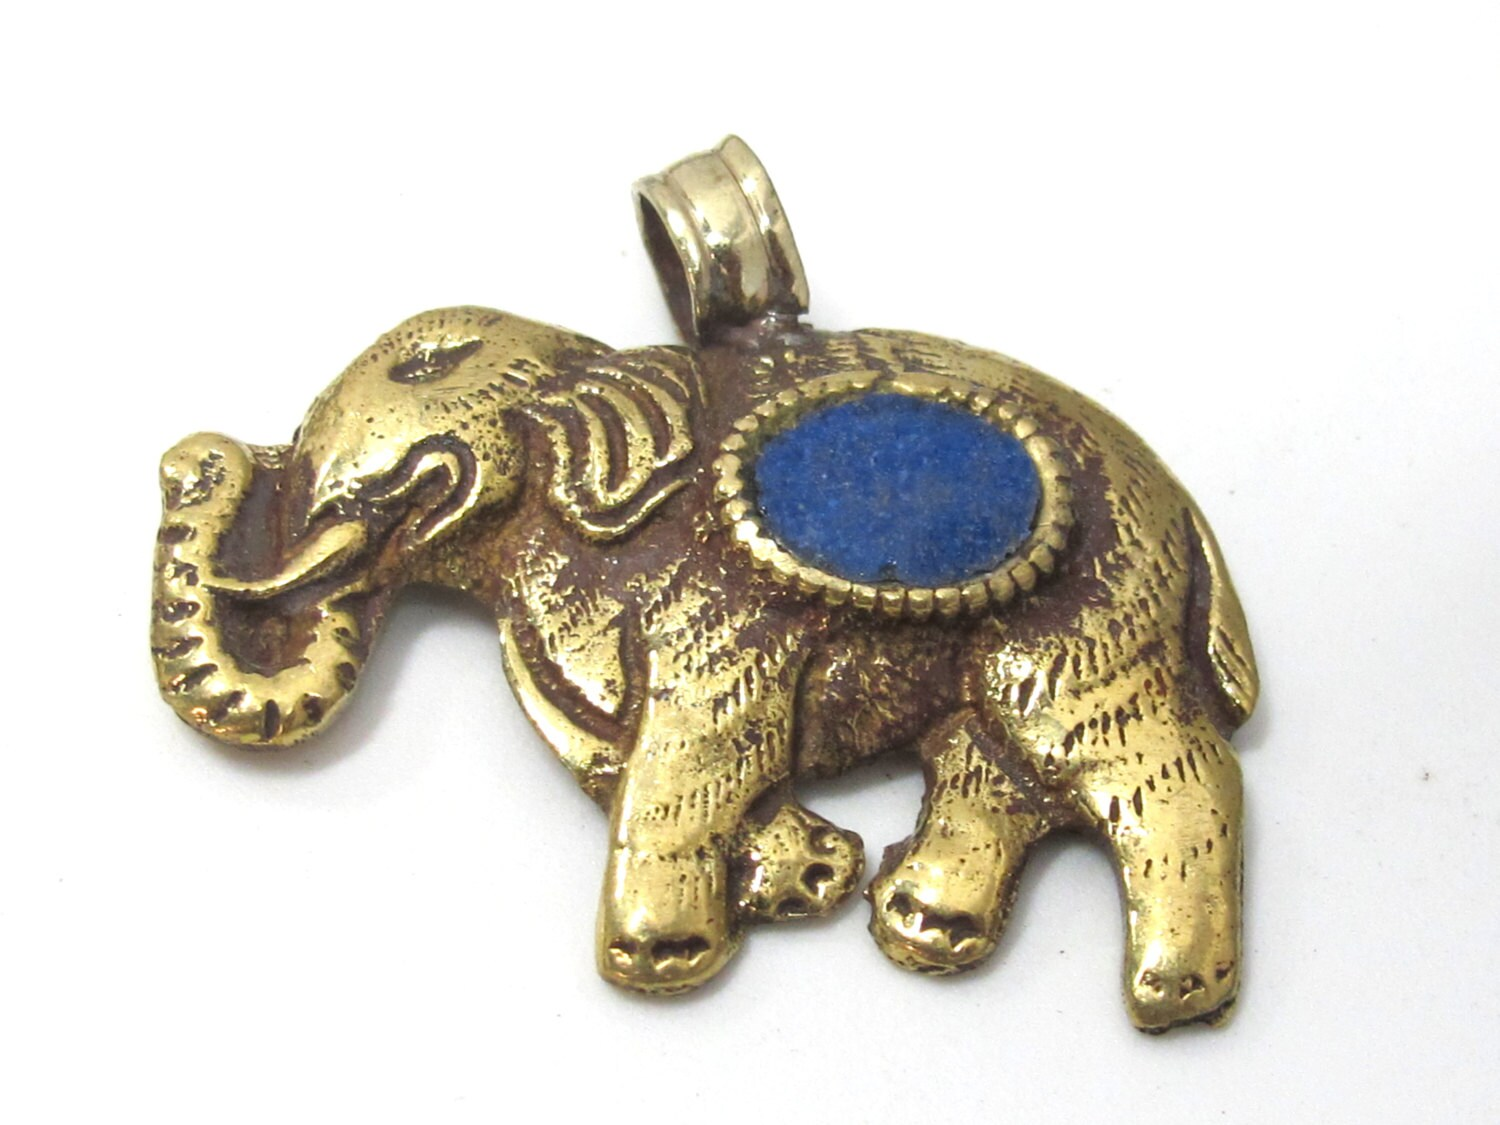 1 Pendant Tibetan Brass Elephant Pendant Antiqued Finish With